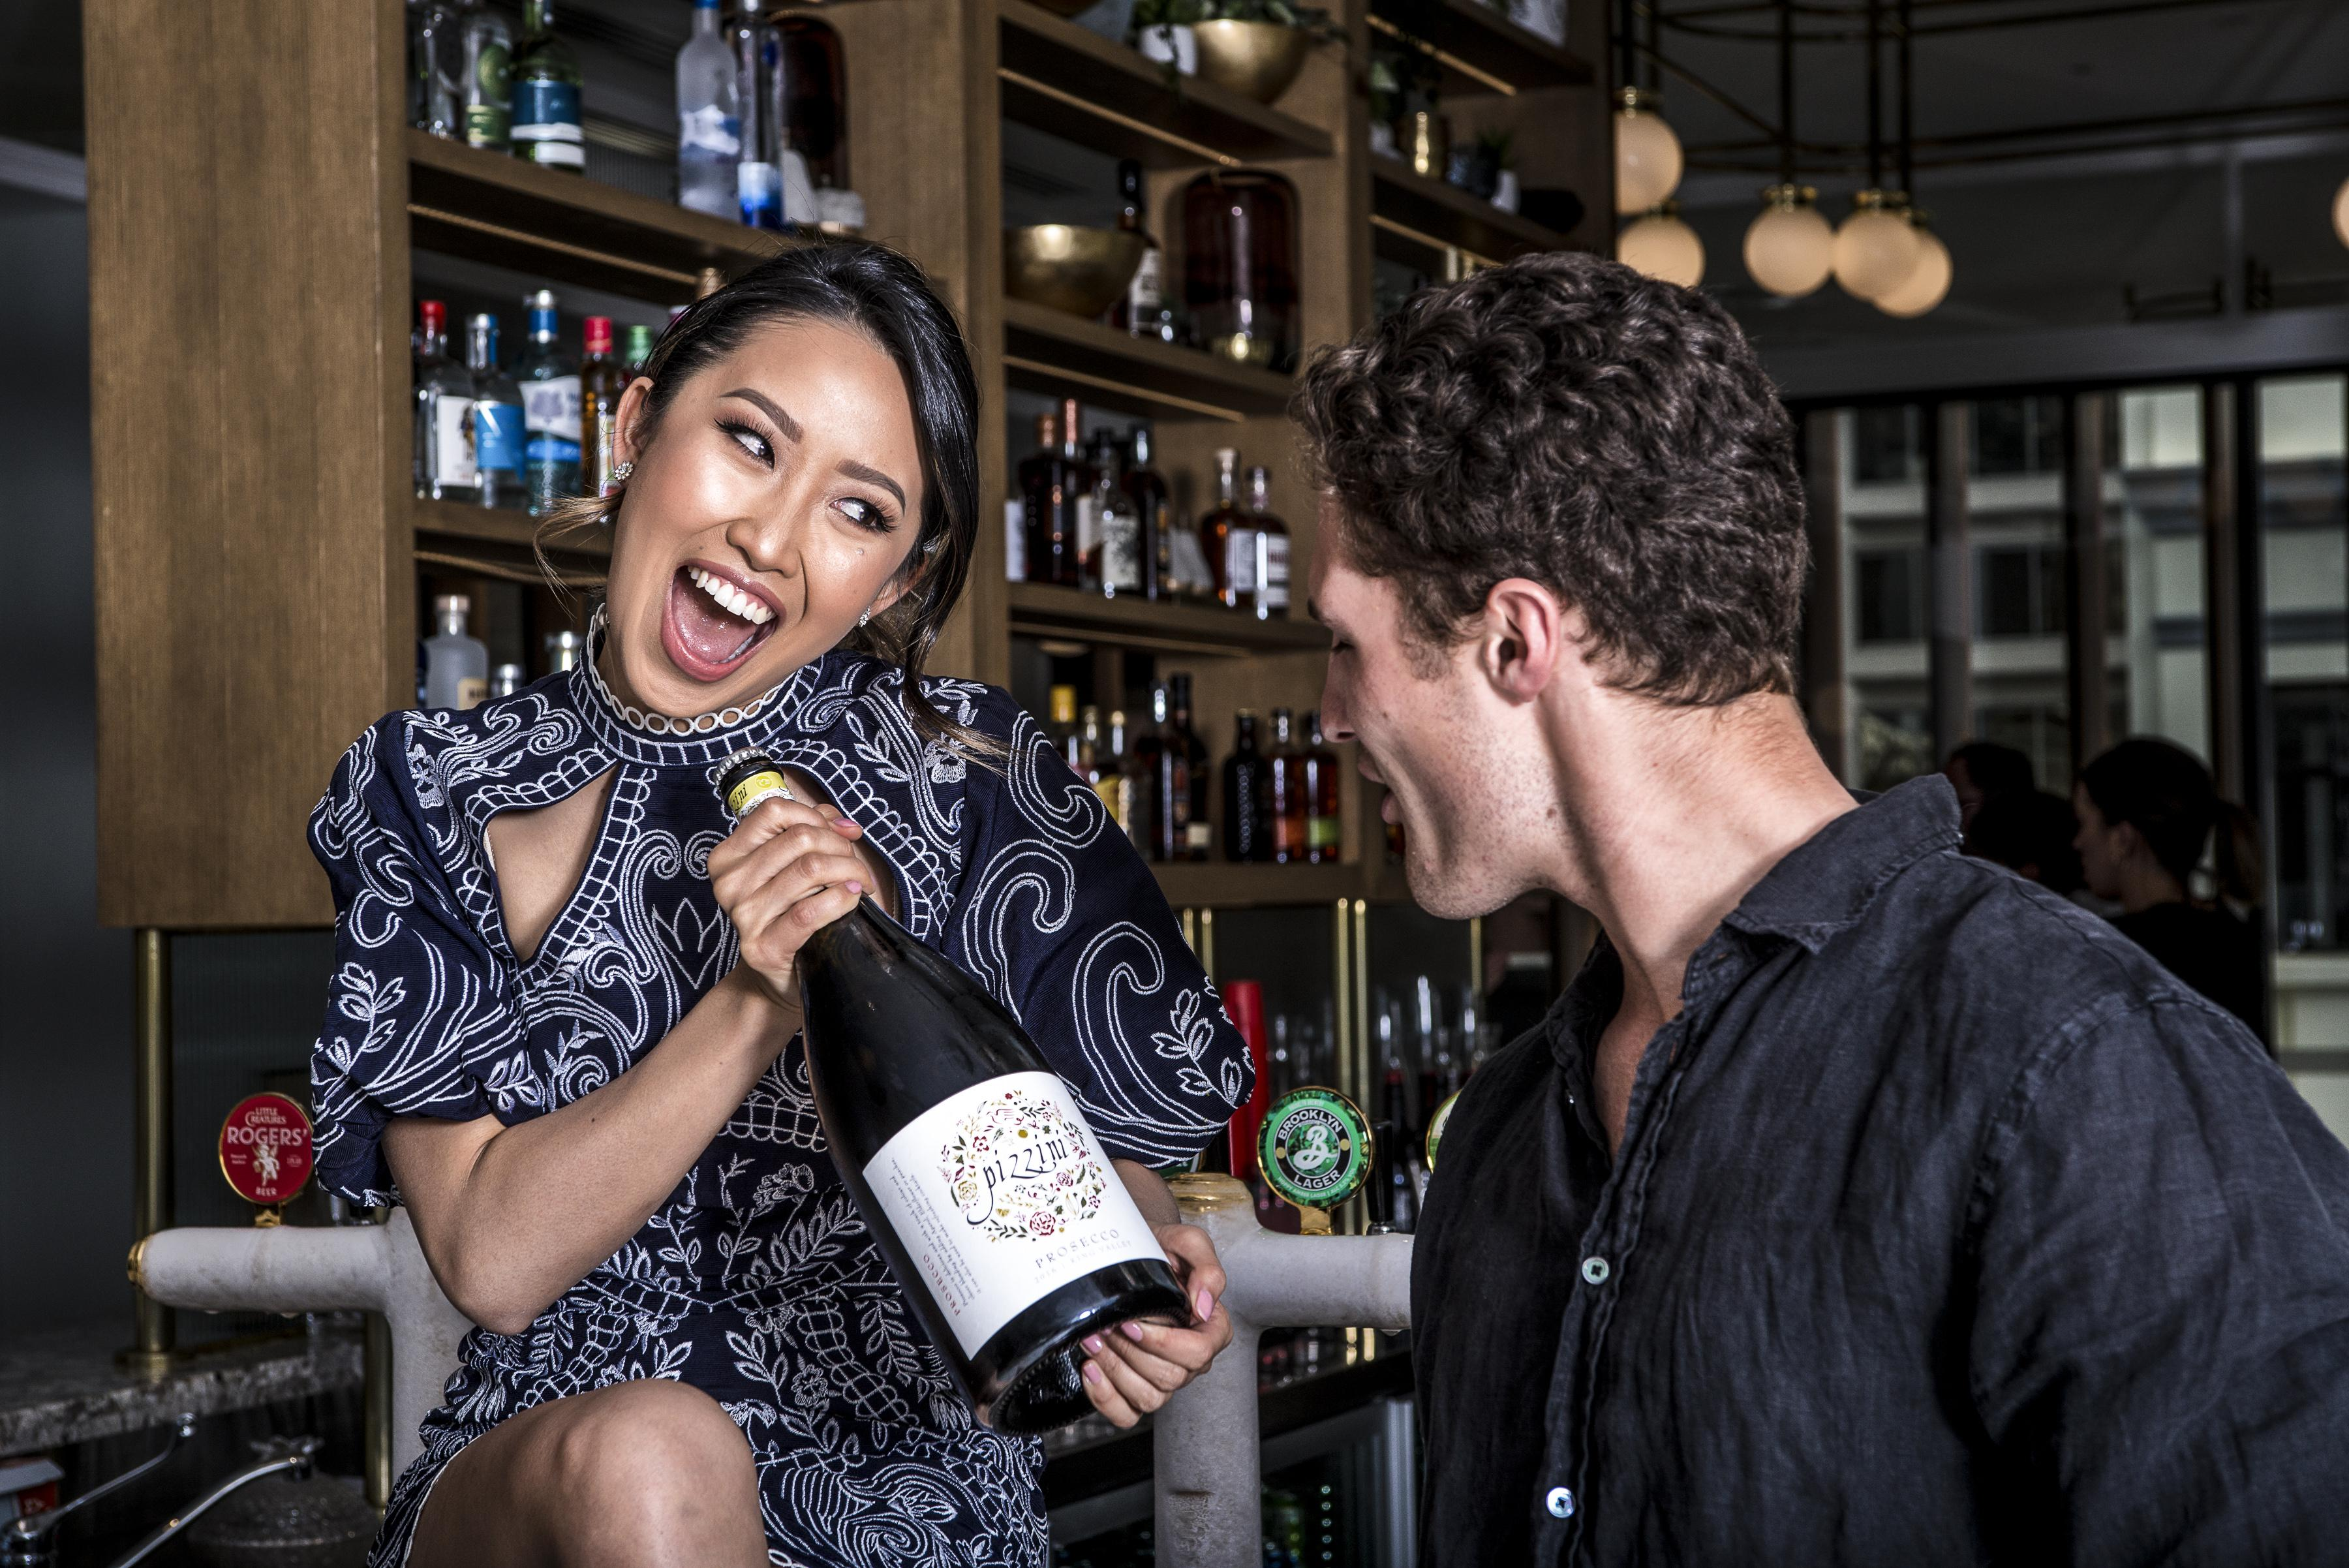 Photo of a woman smiling and showing a bottle of wine to a man.